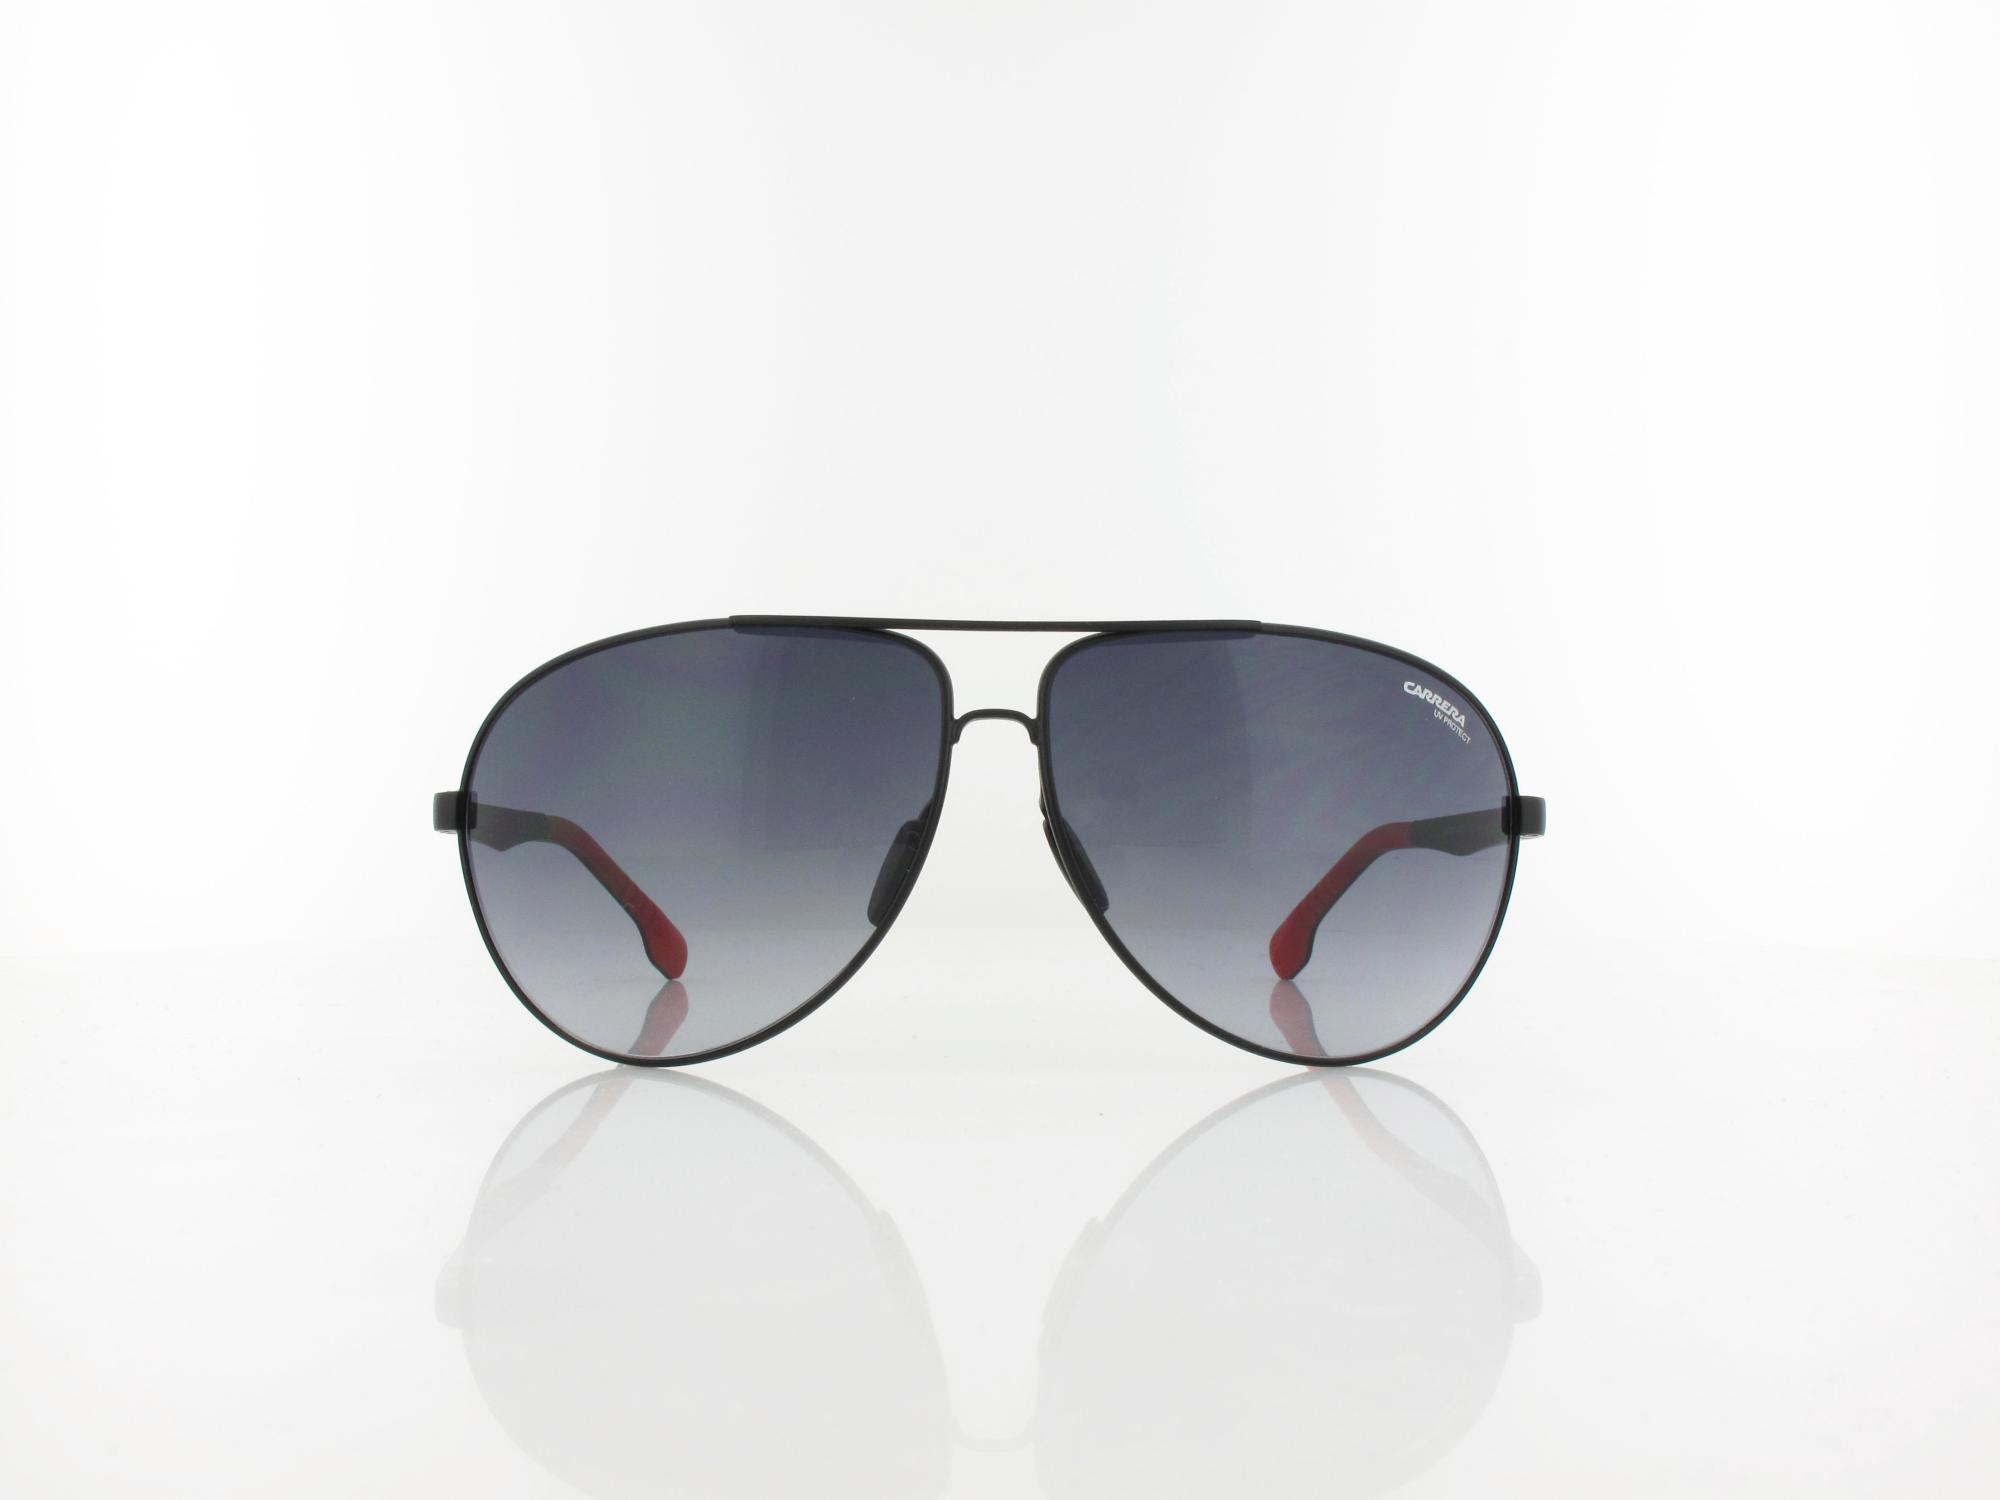 Carrera | 8023/S 003/9O 65 | matte black / dark grey gradient